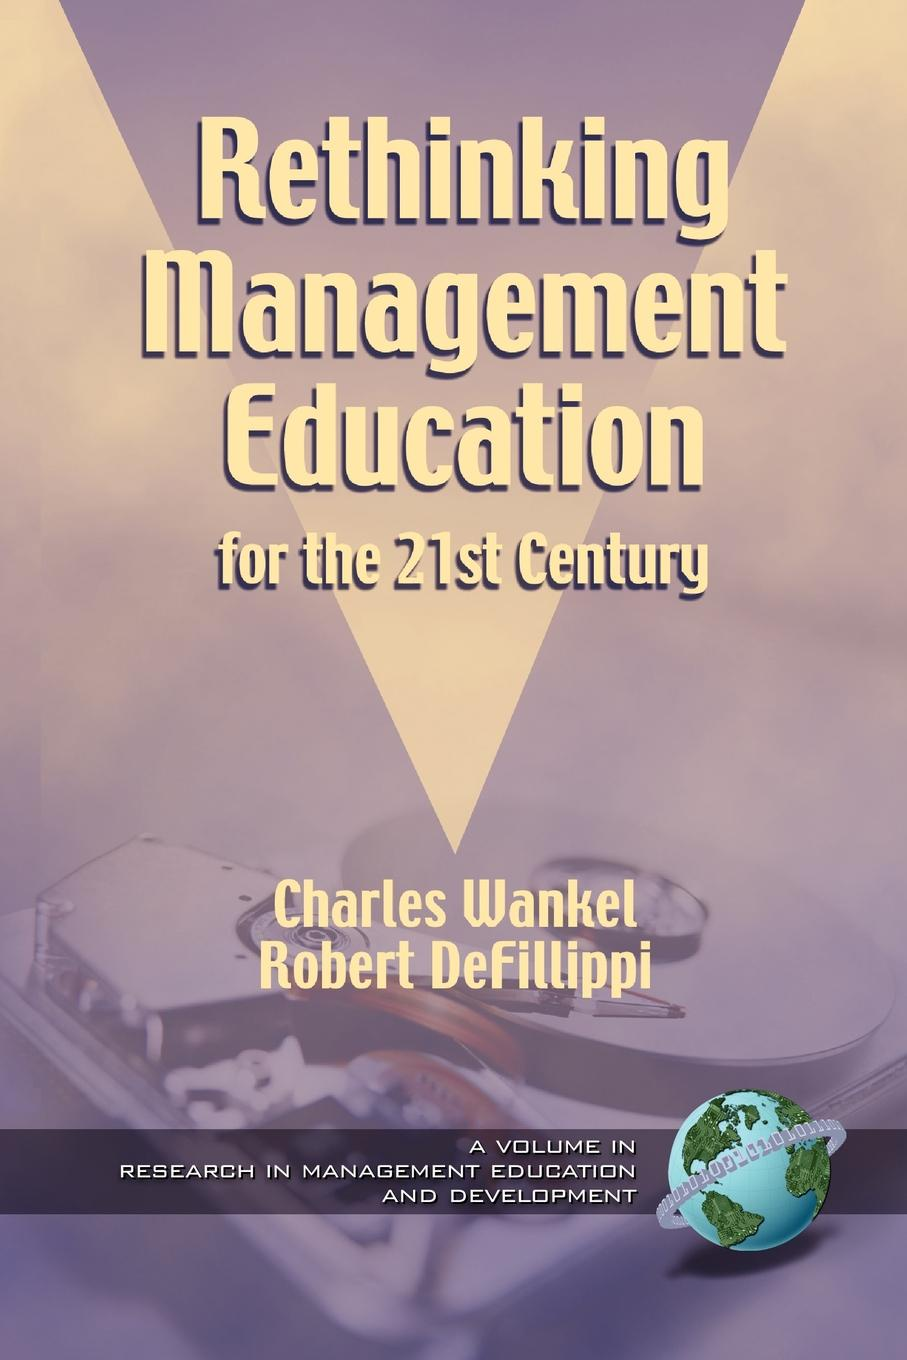 Rethinking Management Education for the 21st Century (PB) roland m schulz rethinking science education philosophical perspectives